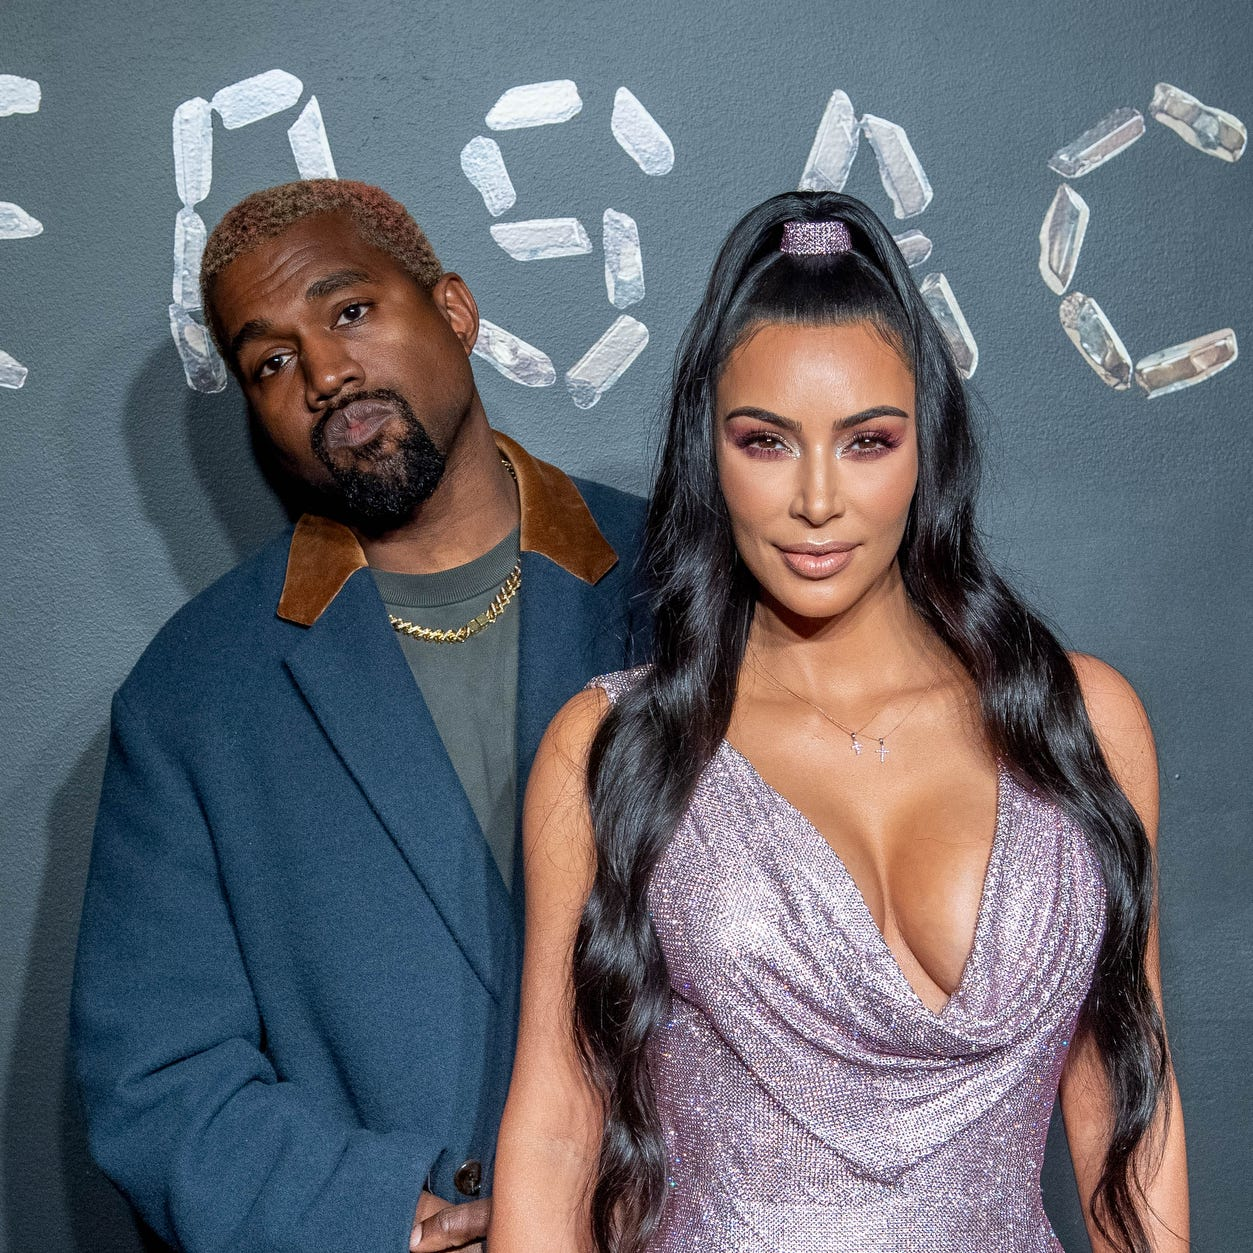 Kanye West and Kim Kardashian West step out to attend the the Versace fall 2019 fashion show at the American Stock Exchange Building in lower Manhattan.